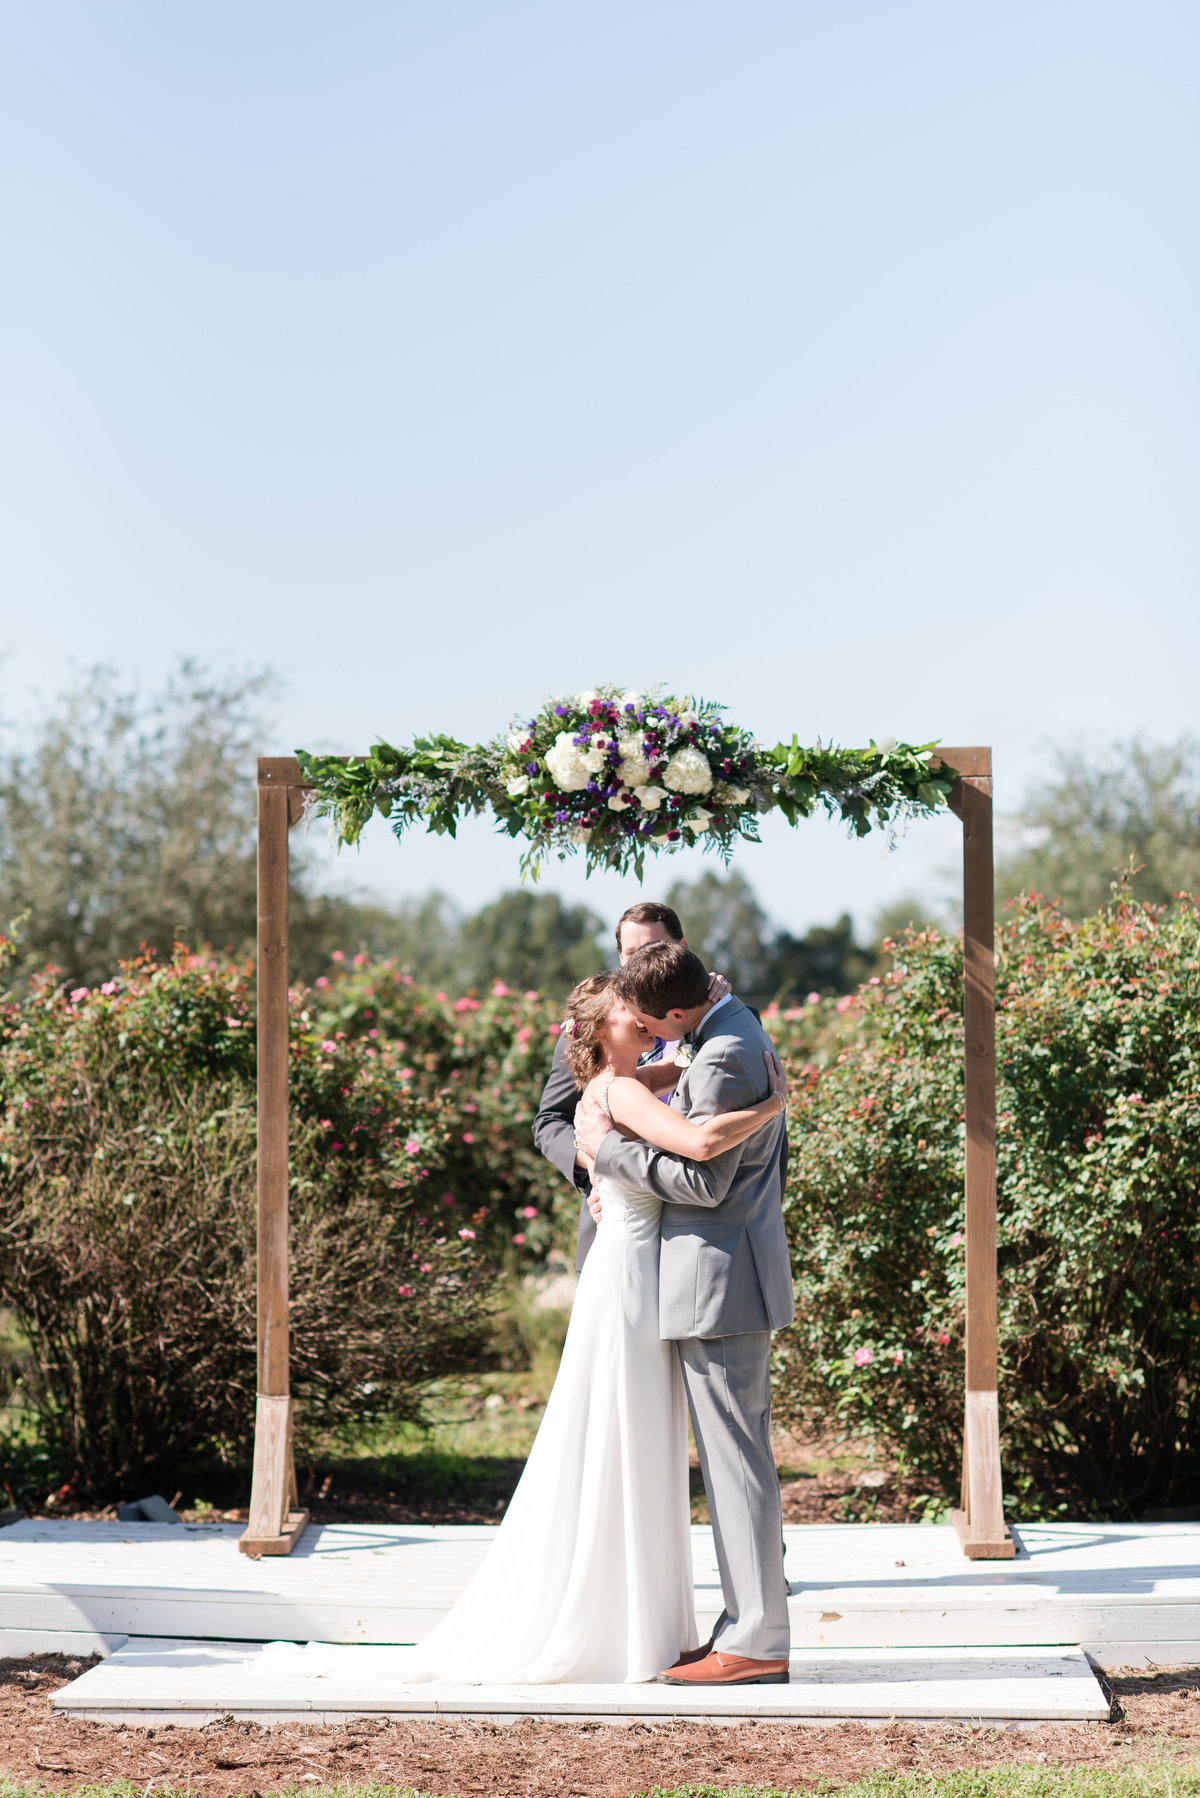 A Merry Hill Wedding, Michelle and Sara Photography, Mebane NC2